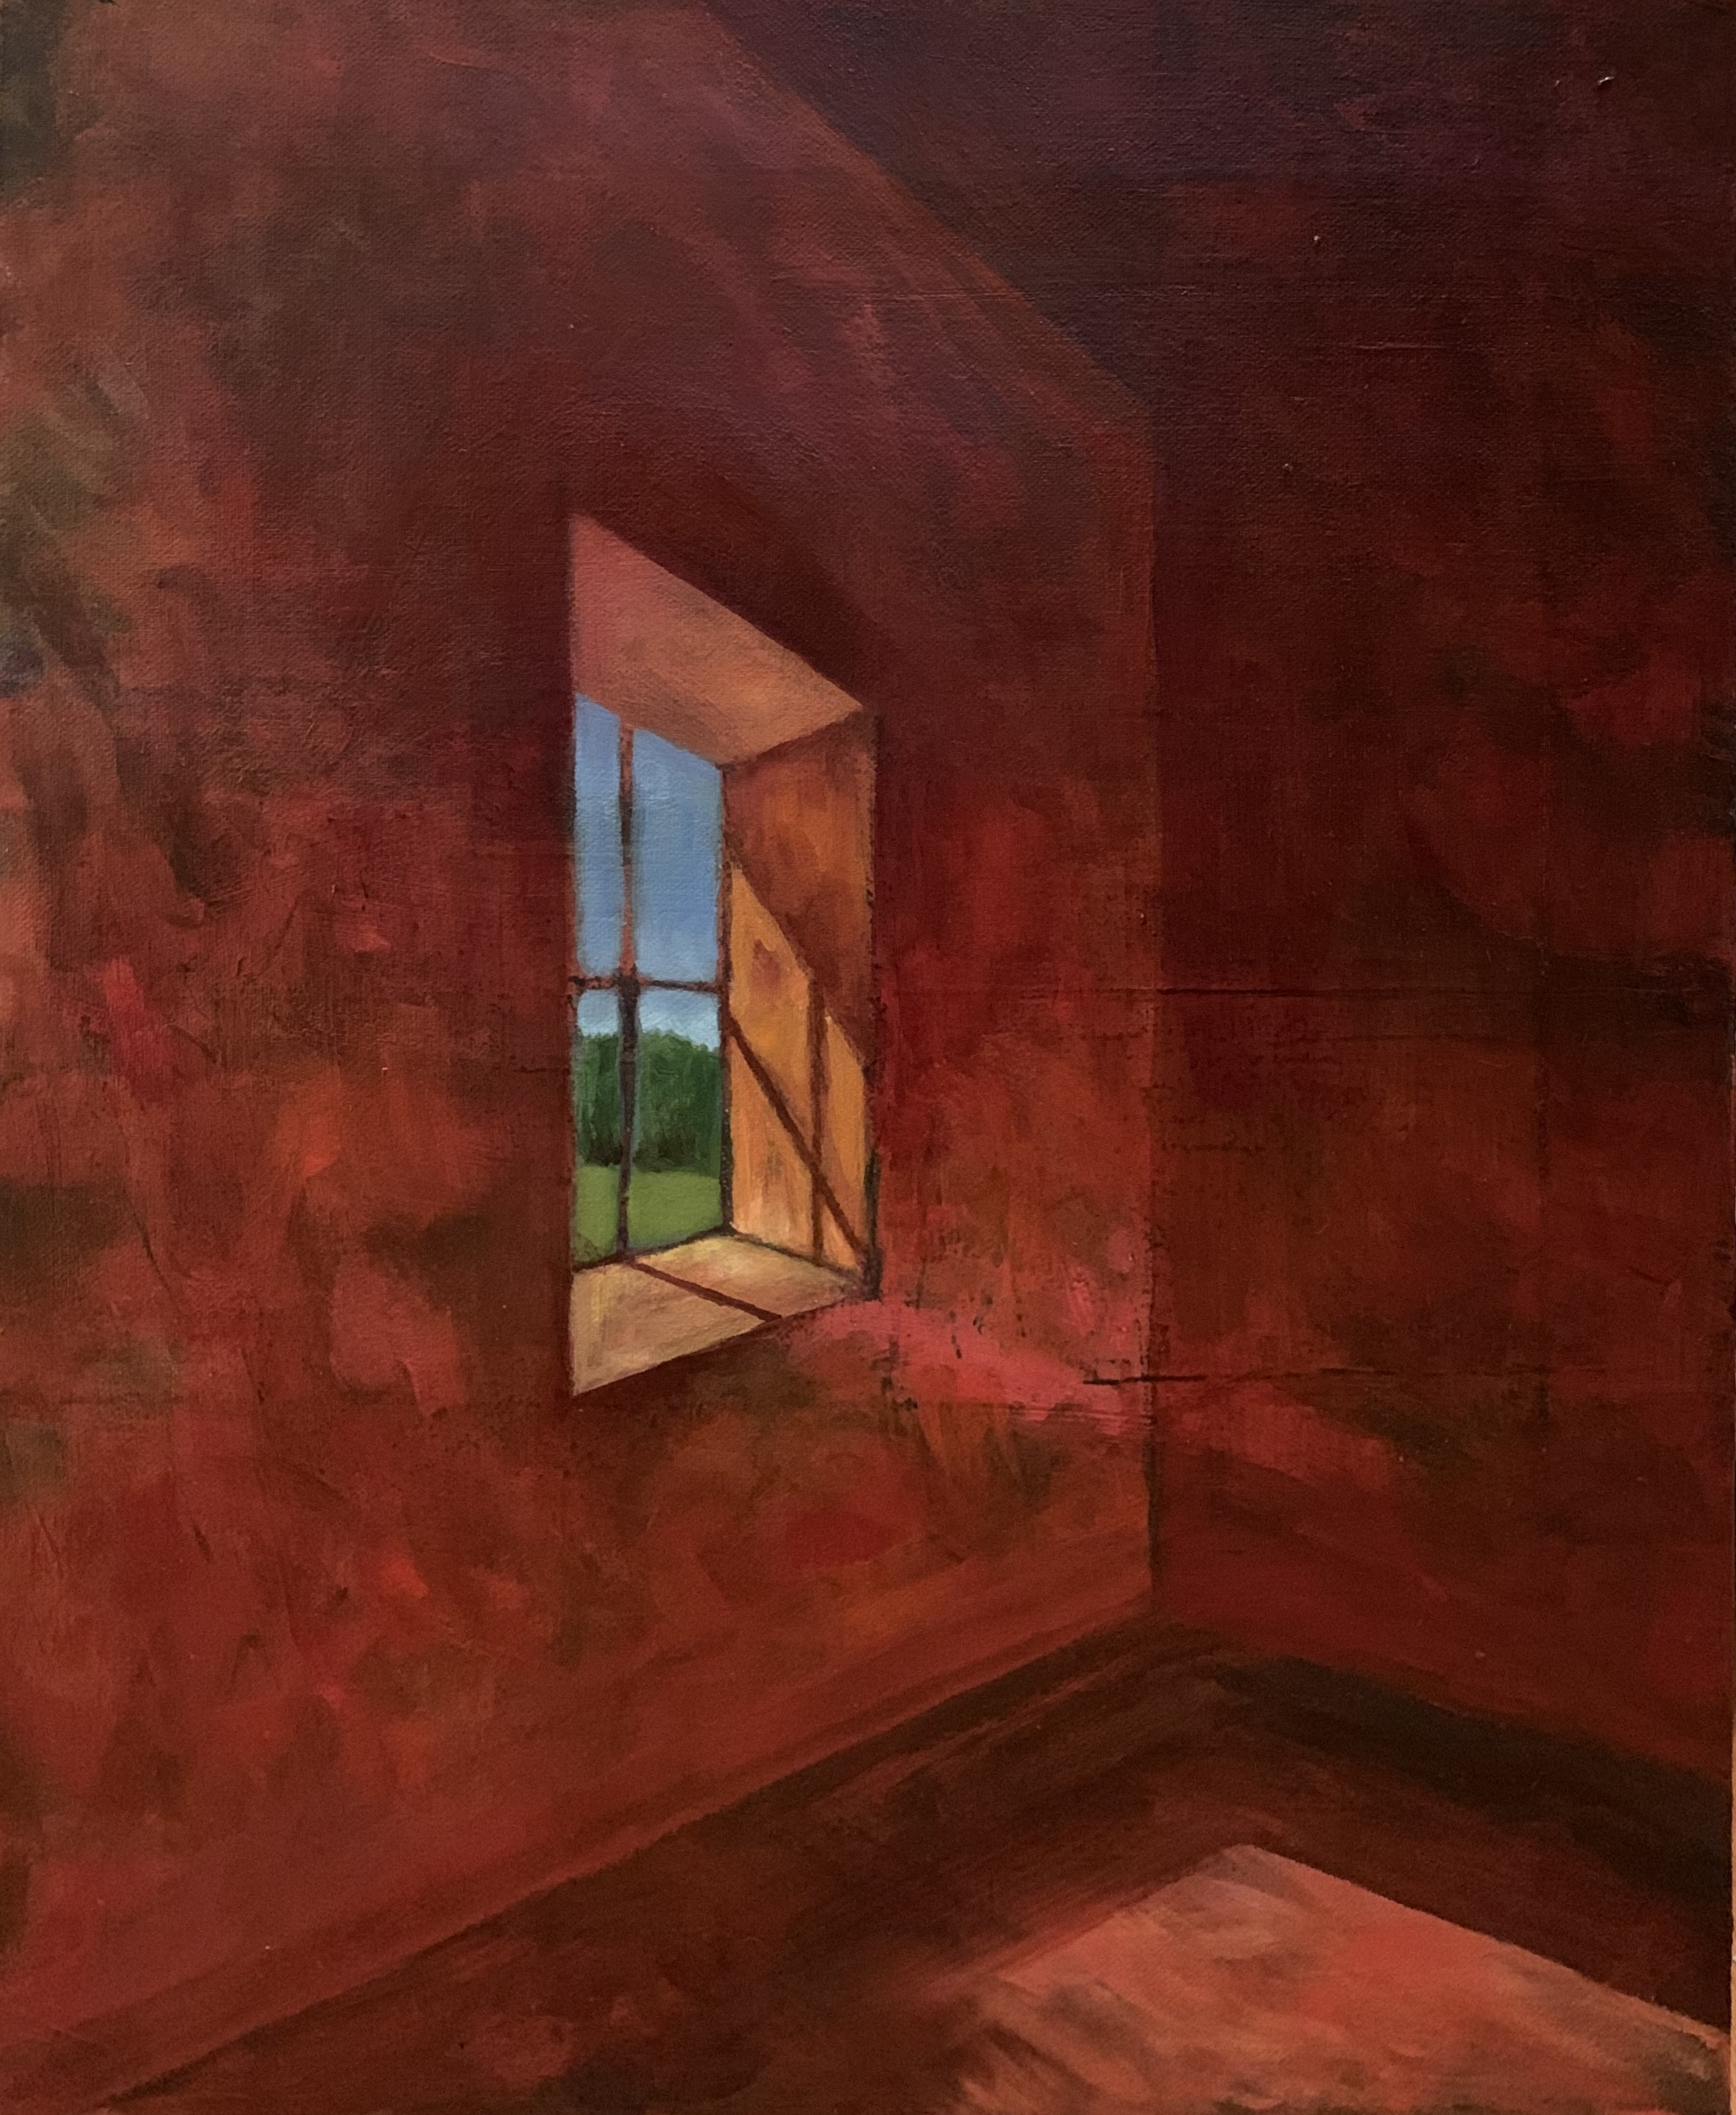 'Alone 3', oil on canvas by Ed Hall ($500) ⎼ 'This series deals with the loneliness and isolation that comes with a 100 year pandemic. Initially I was interested in the view through the window as a metaphor for longing, but in the final analysis the paintings became more about lonely interiors spaces and the stark reality of separation.'